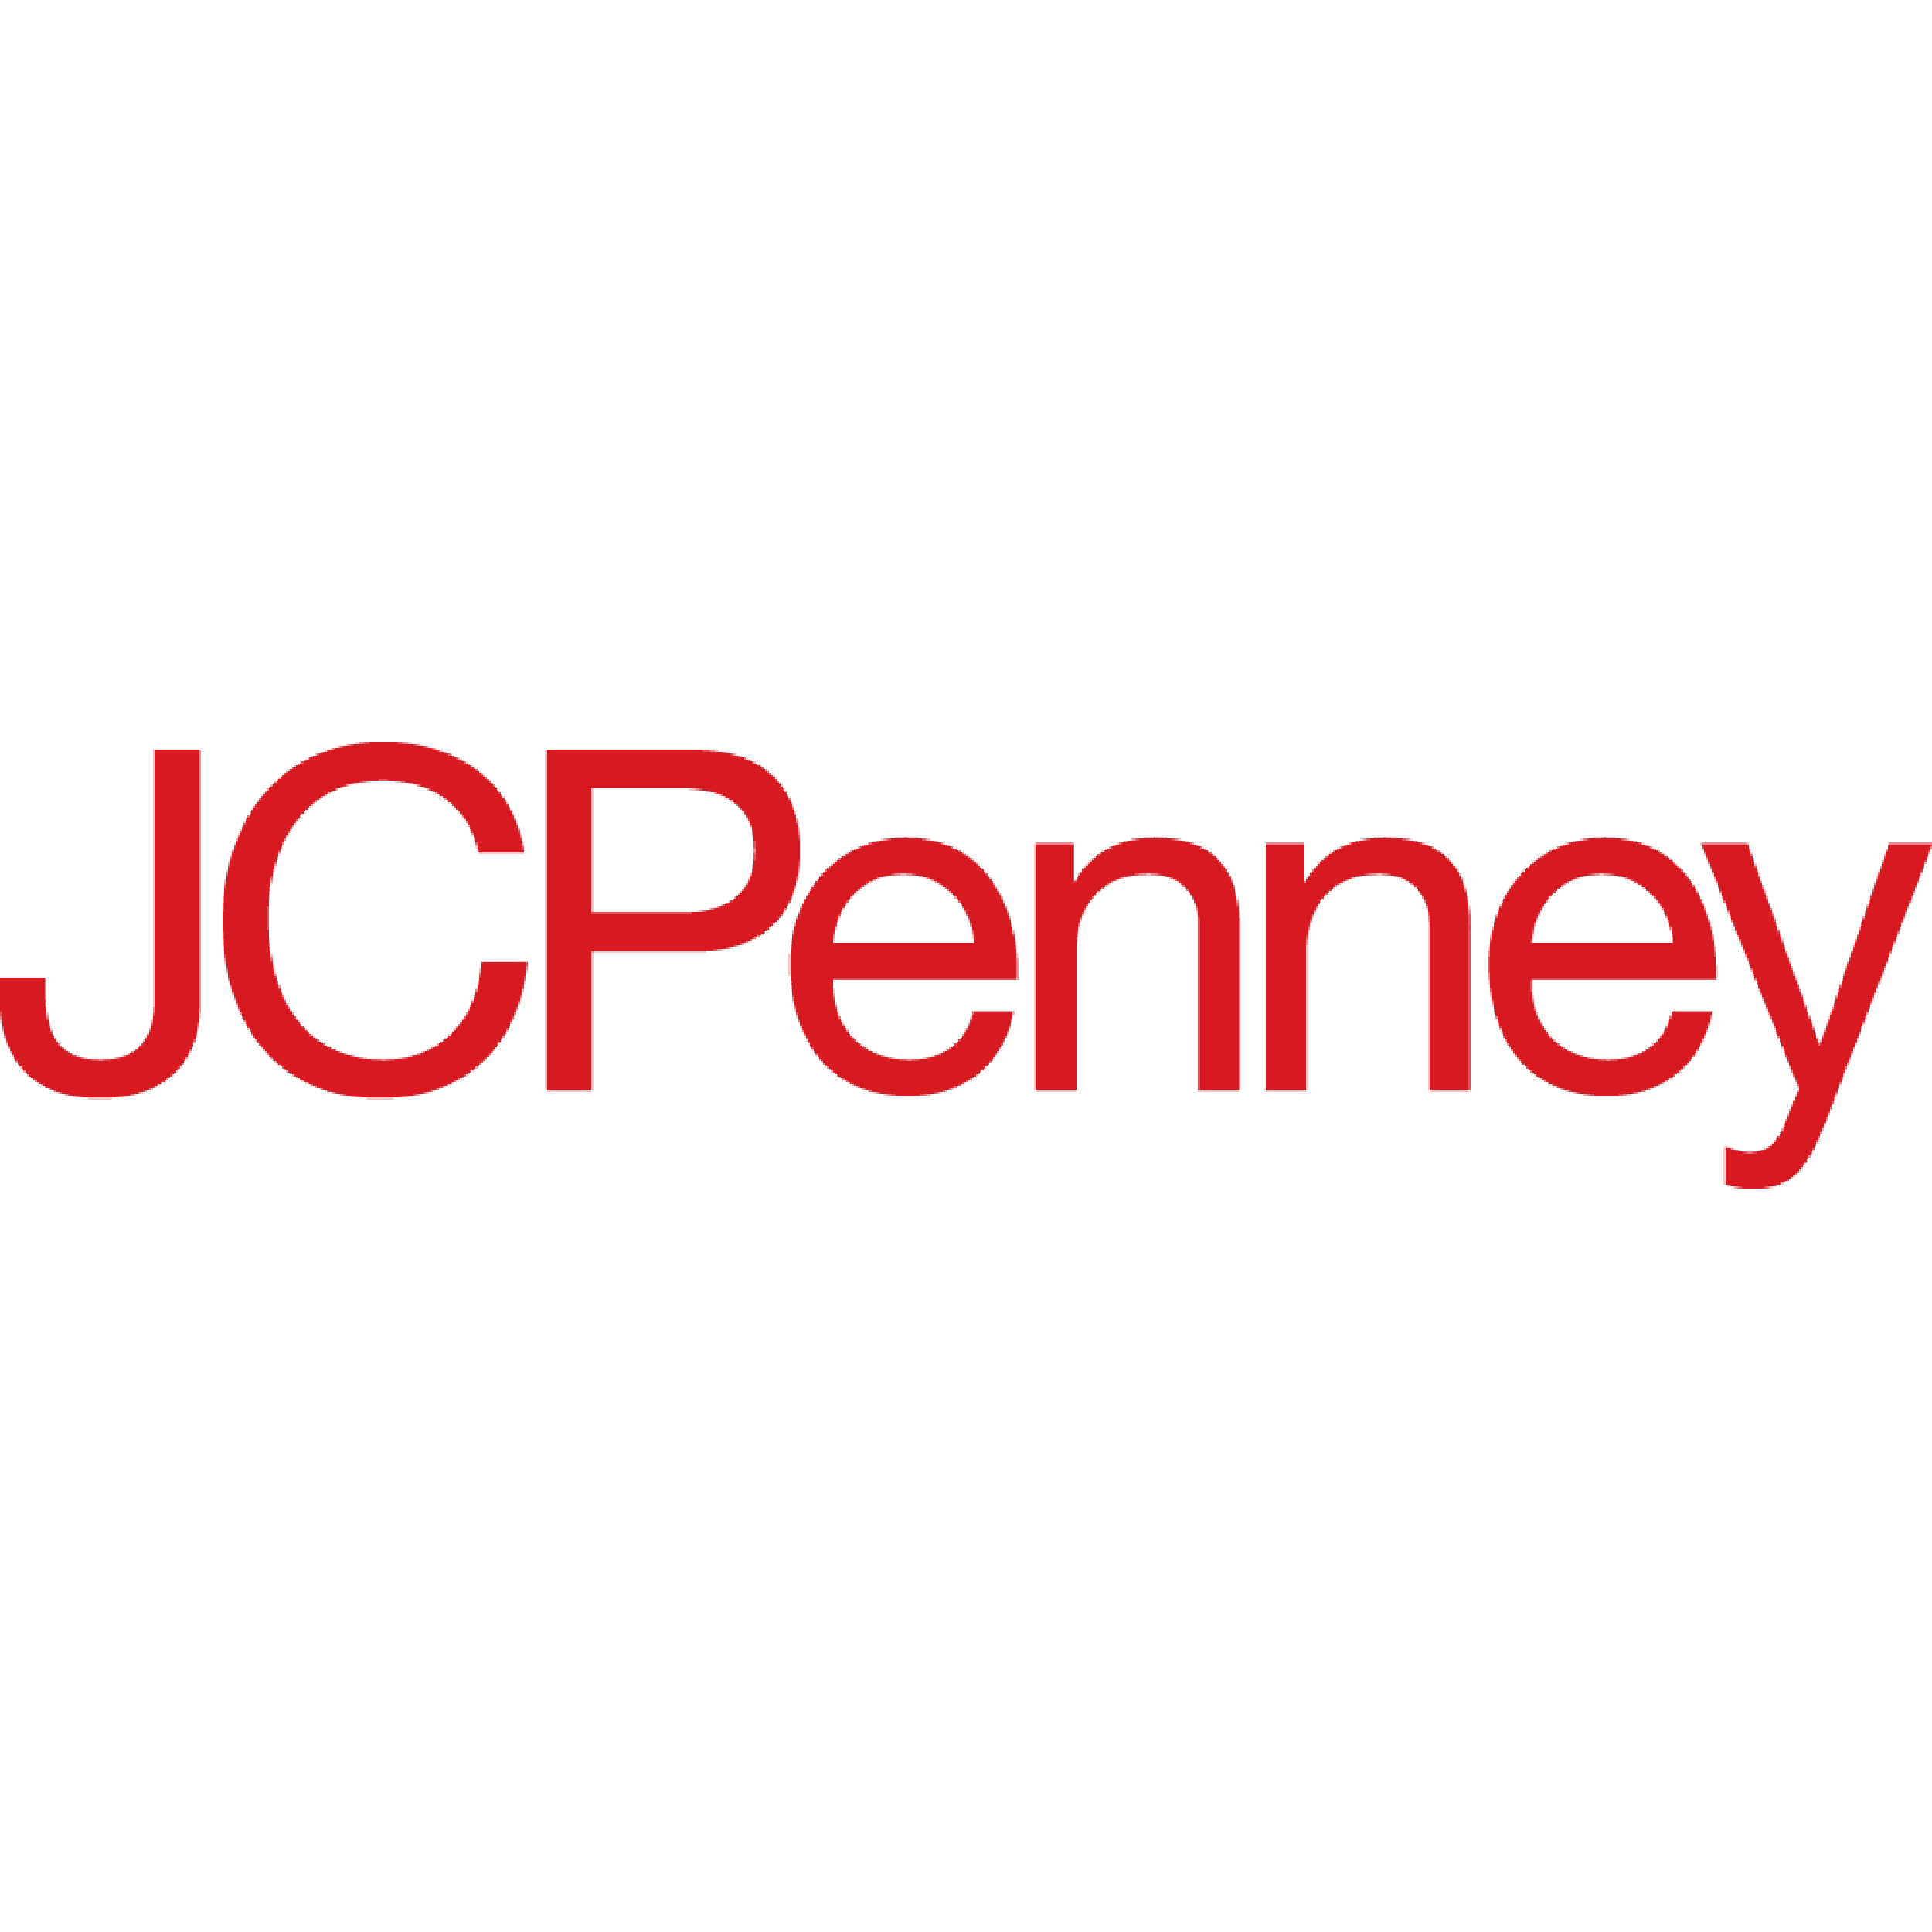 JCPenney - Findlay, OH - Department Stores